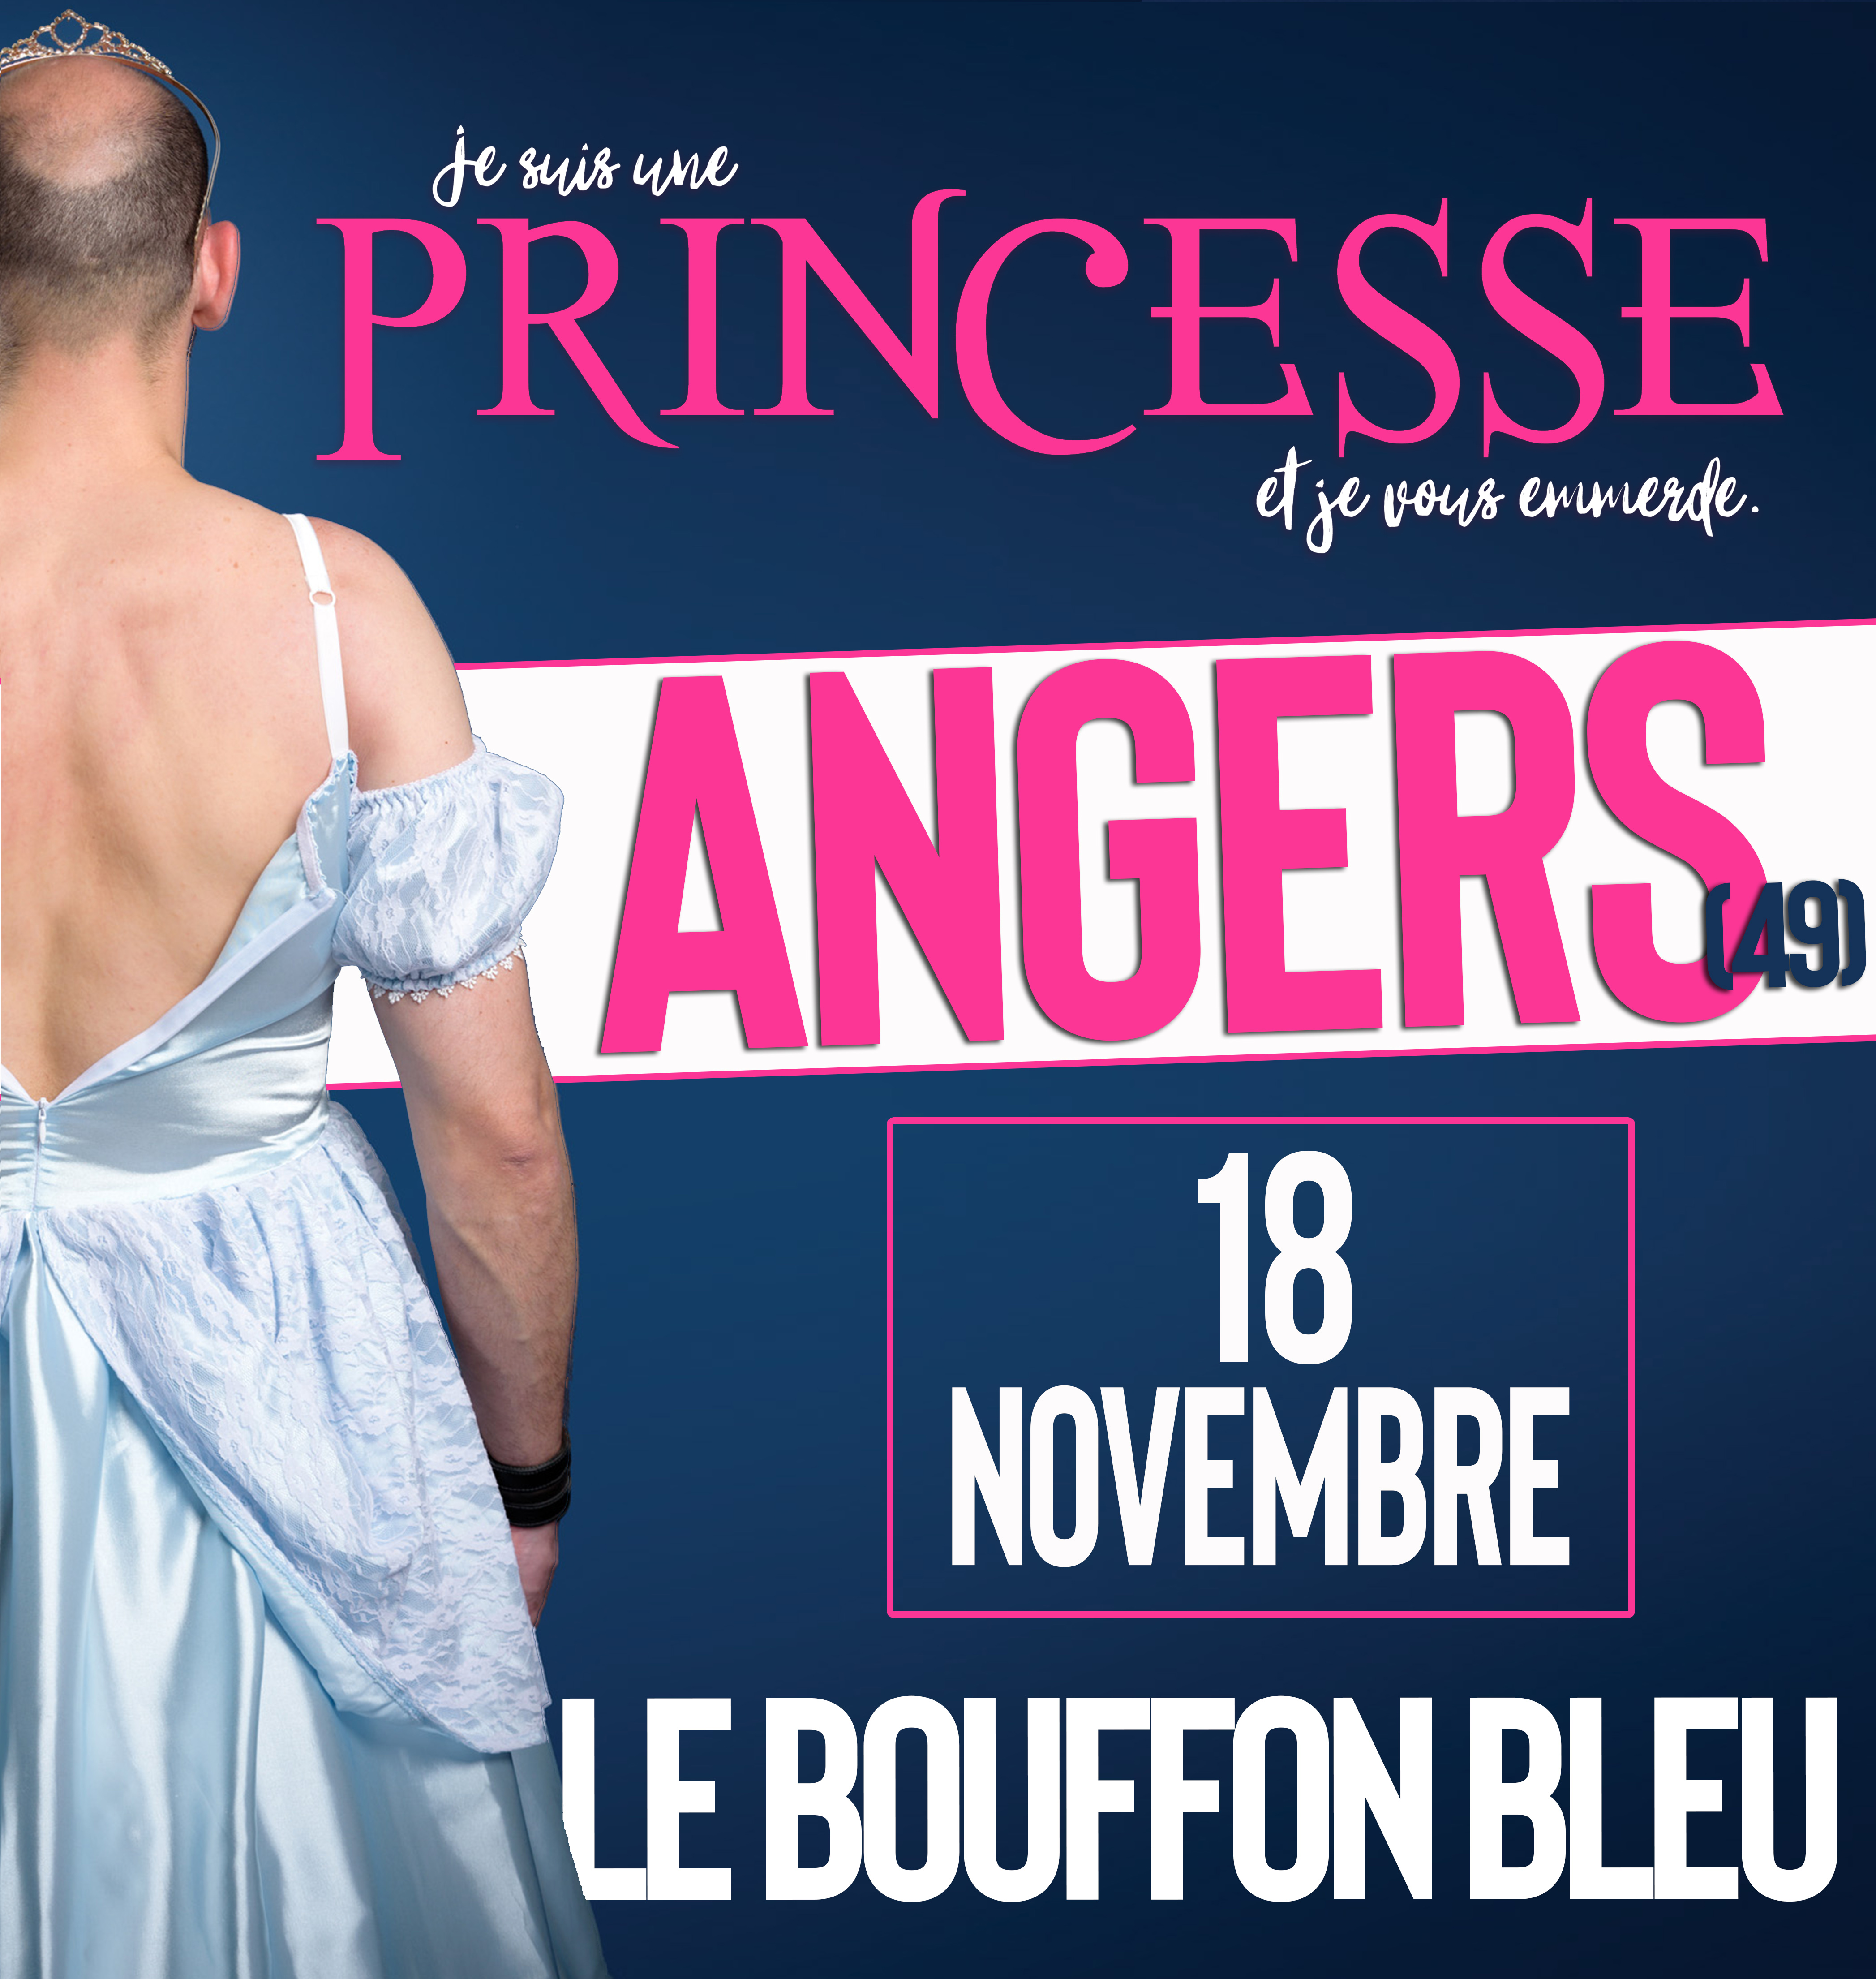 angers20-11